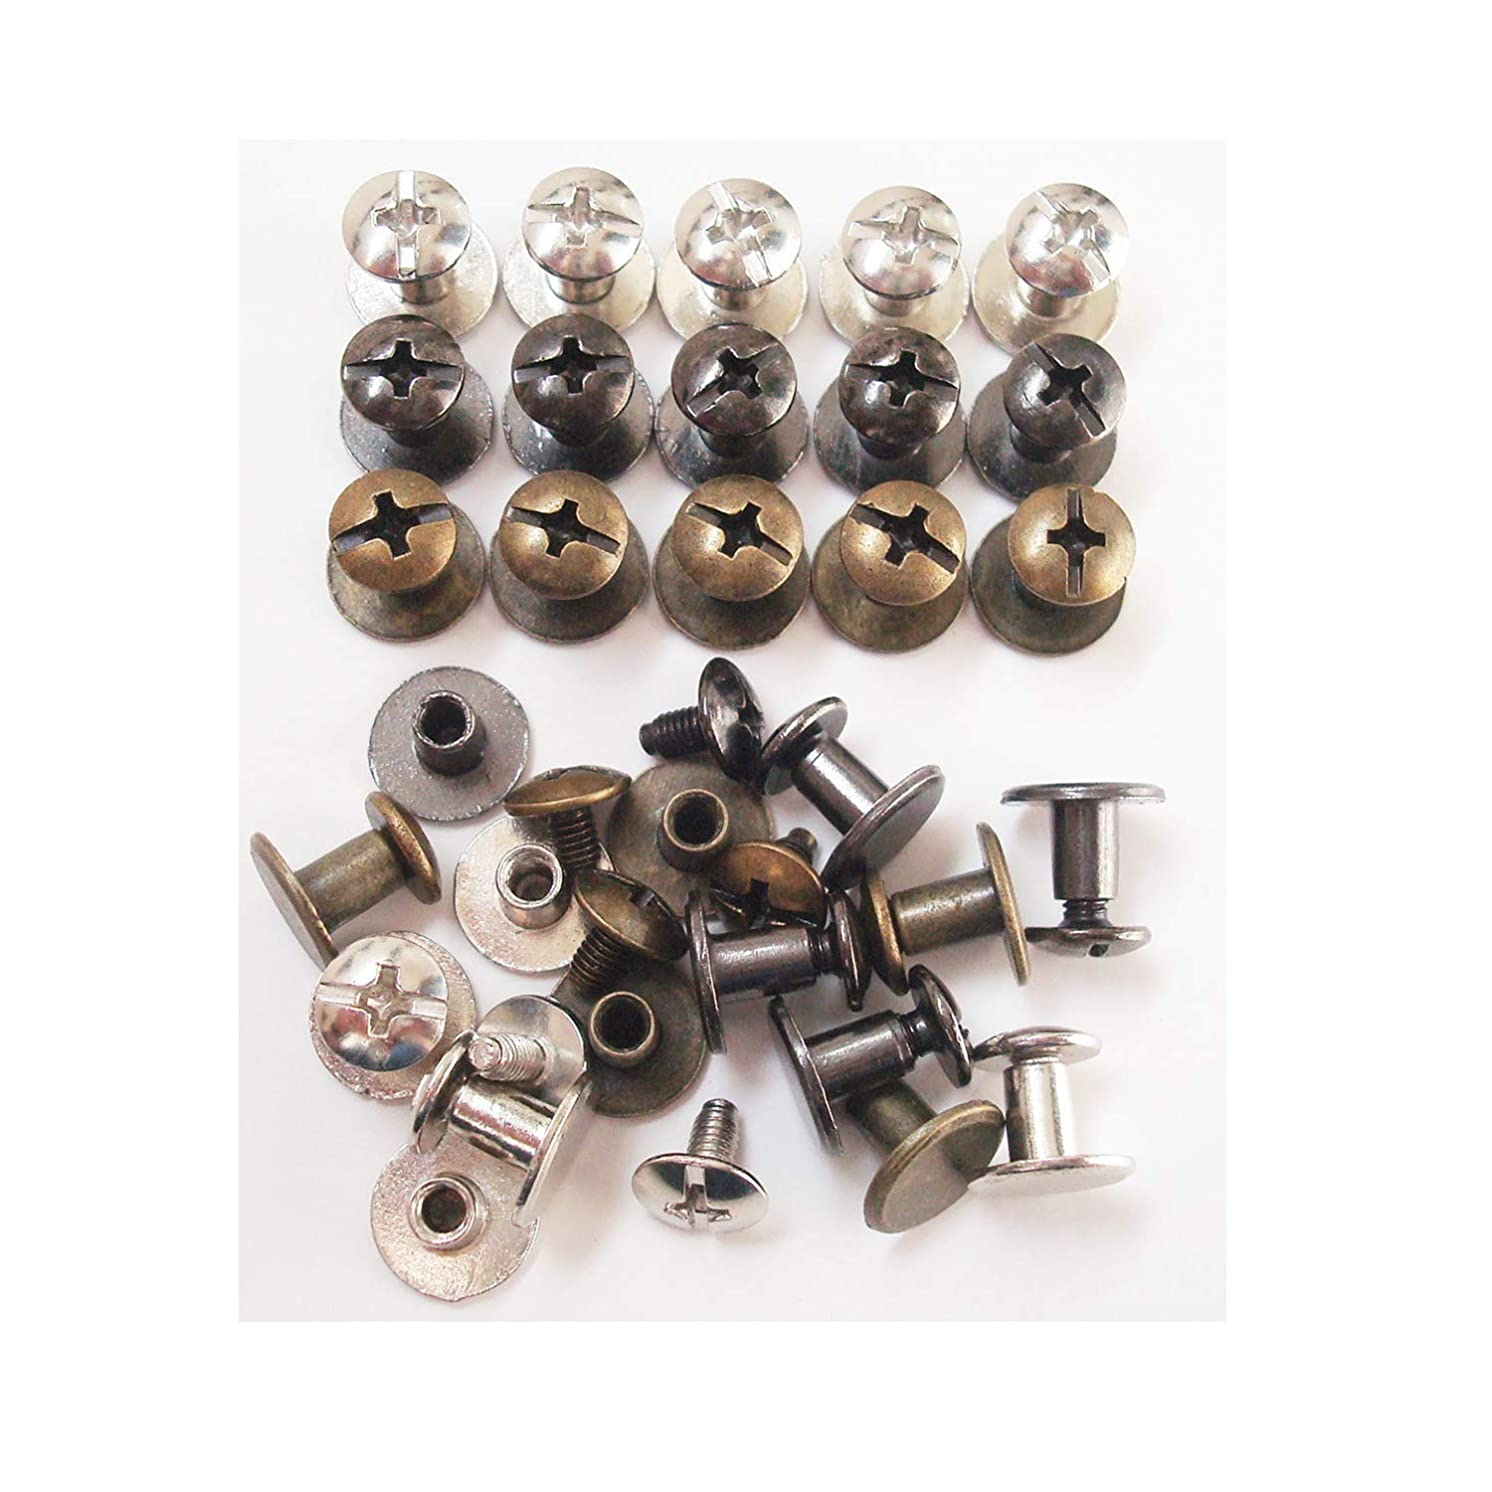 Chicago Screws Solid Belt Tack Screw,Post Fastener Leather Stud Repair Rivets,Mixed Pack 30 Sets